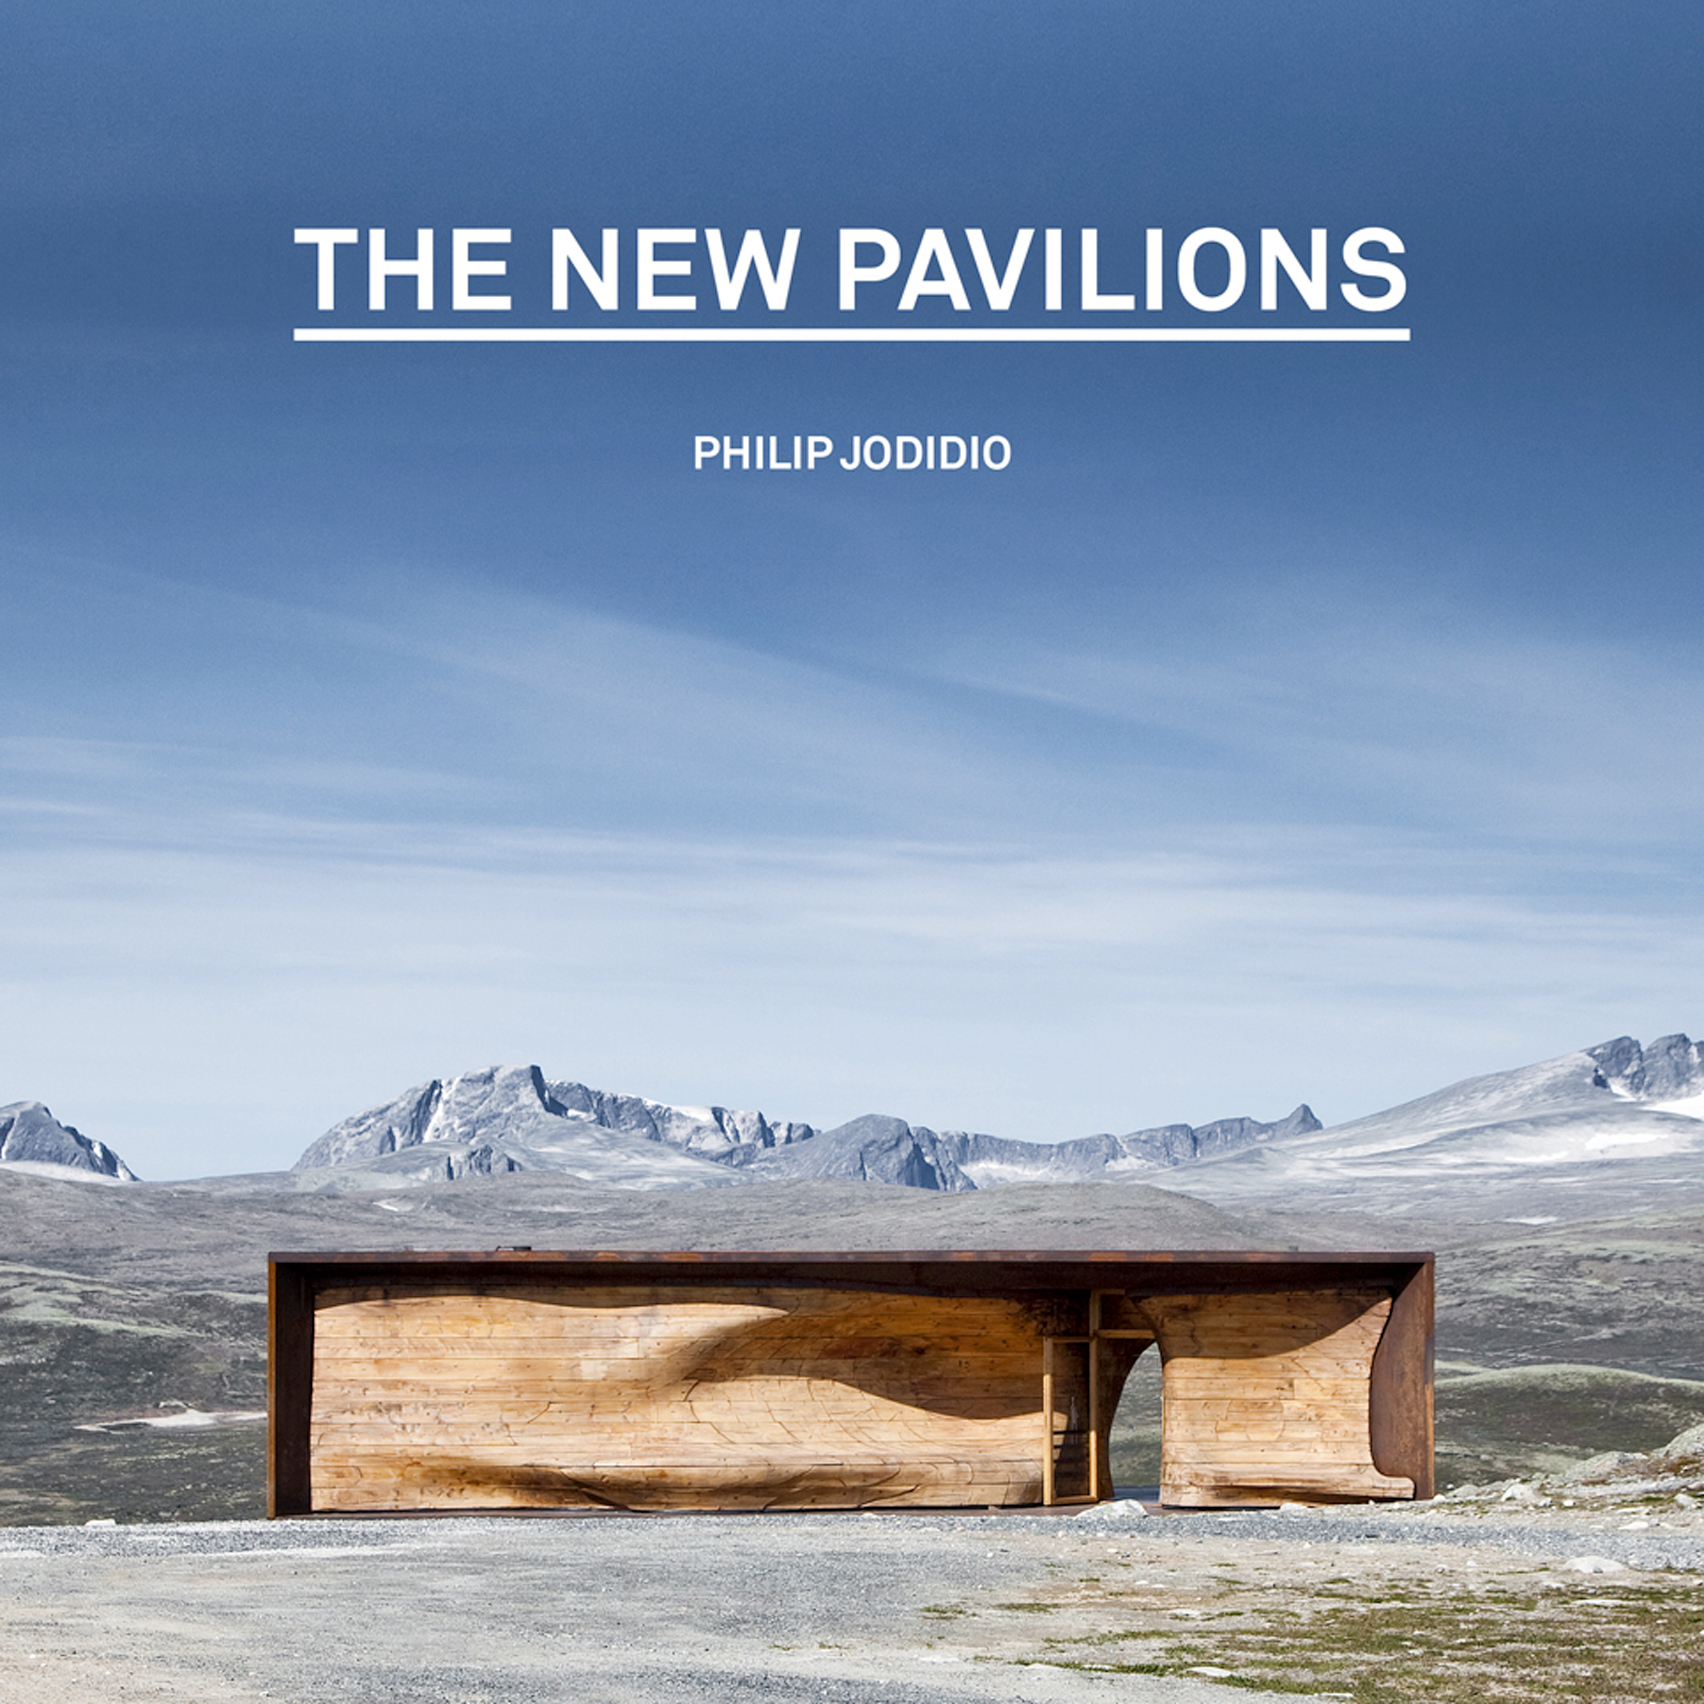 The New Pavilions by Philip Jodidio